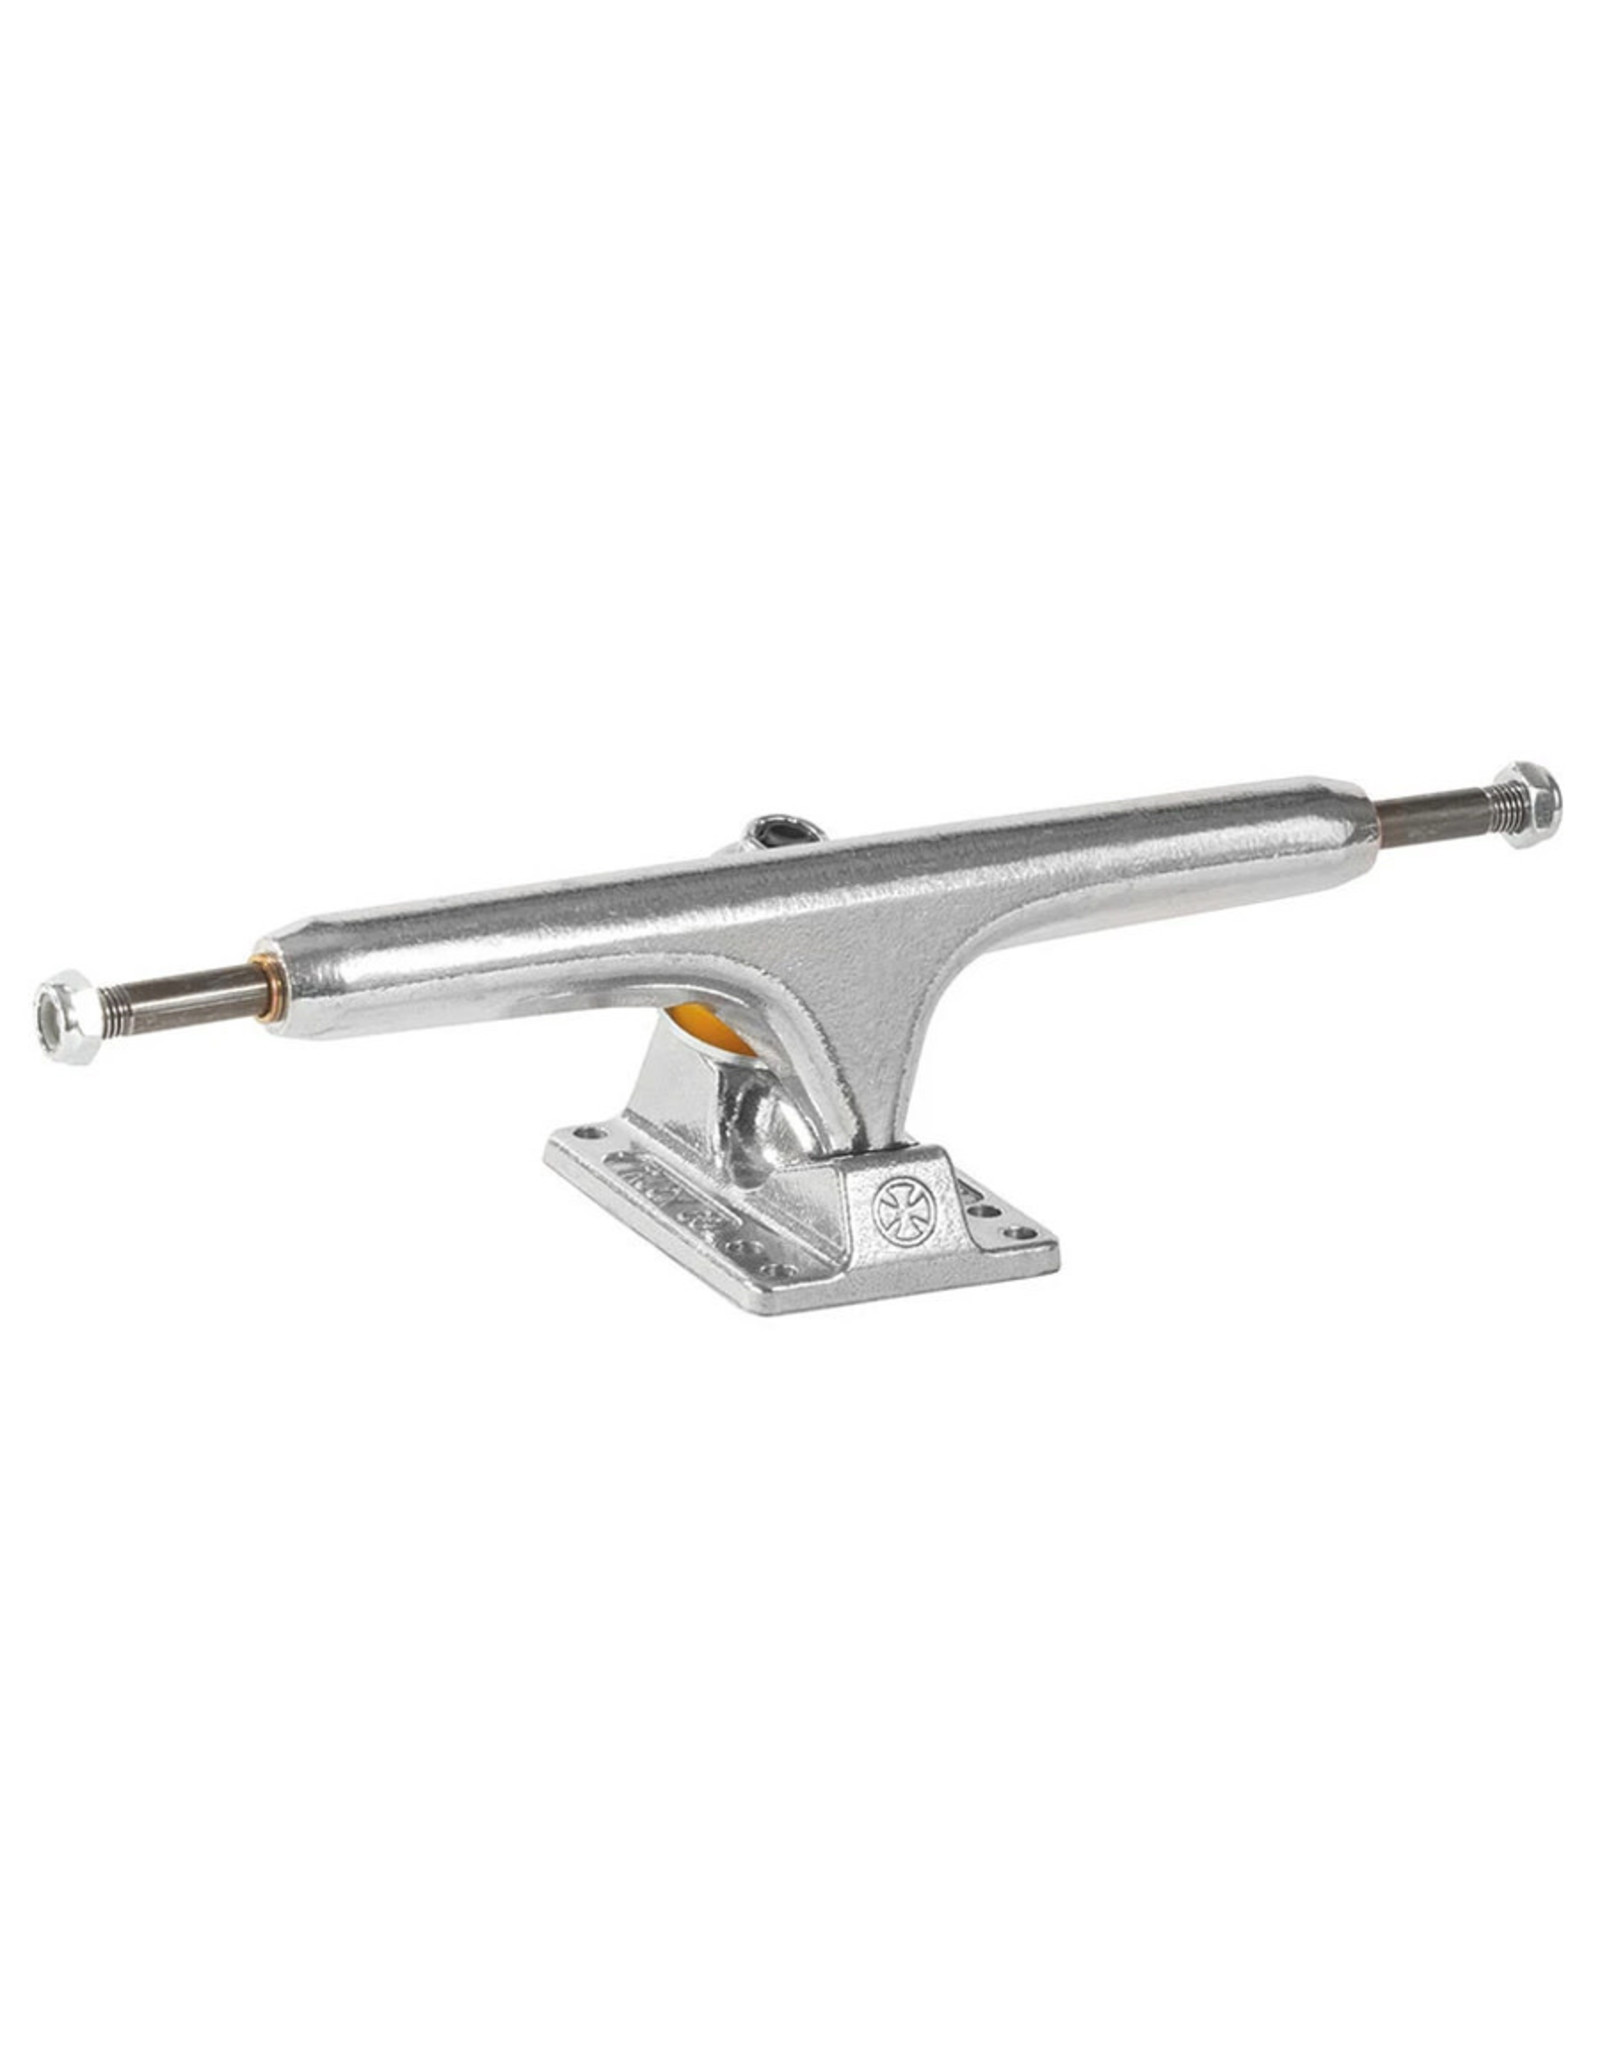 Independent Independent Trucks 215 Stage 11 Standard Silver (Sold in Pair)